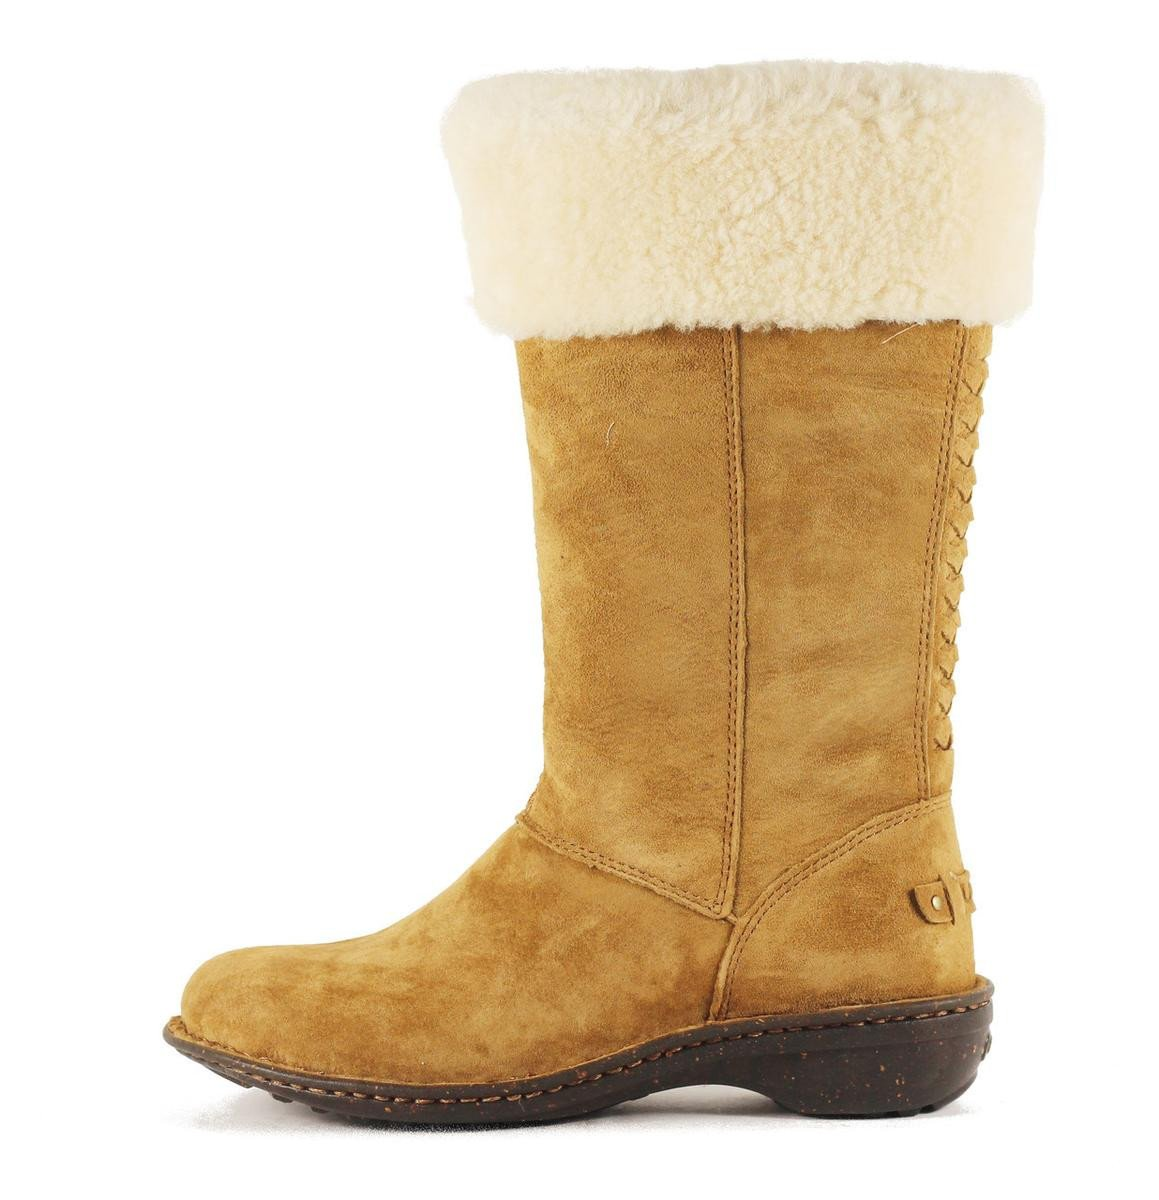 ugg sheepskin cuff boot size 7